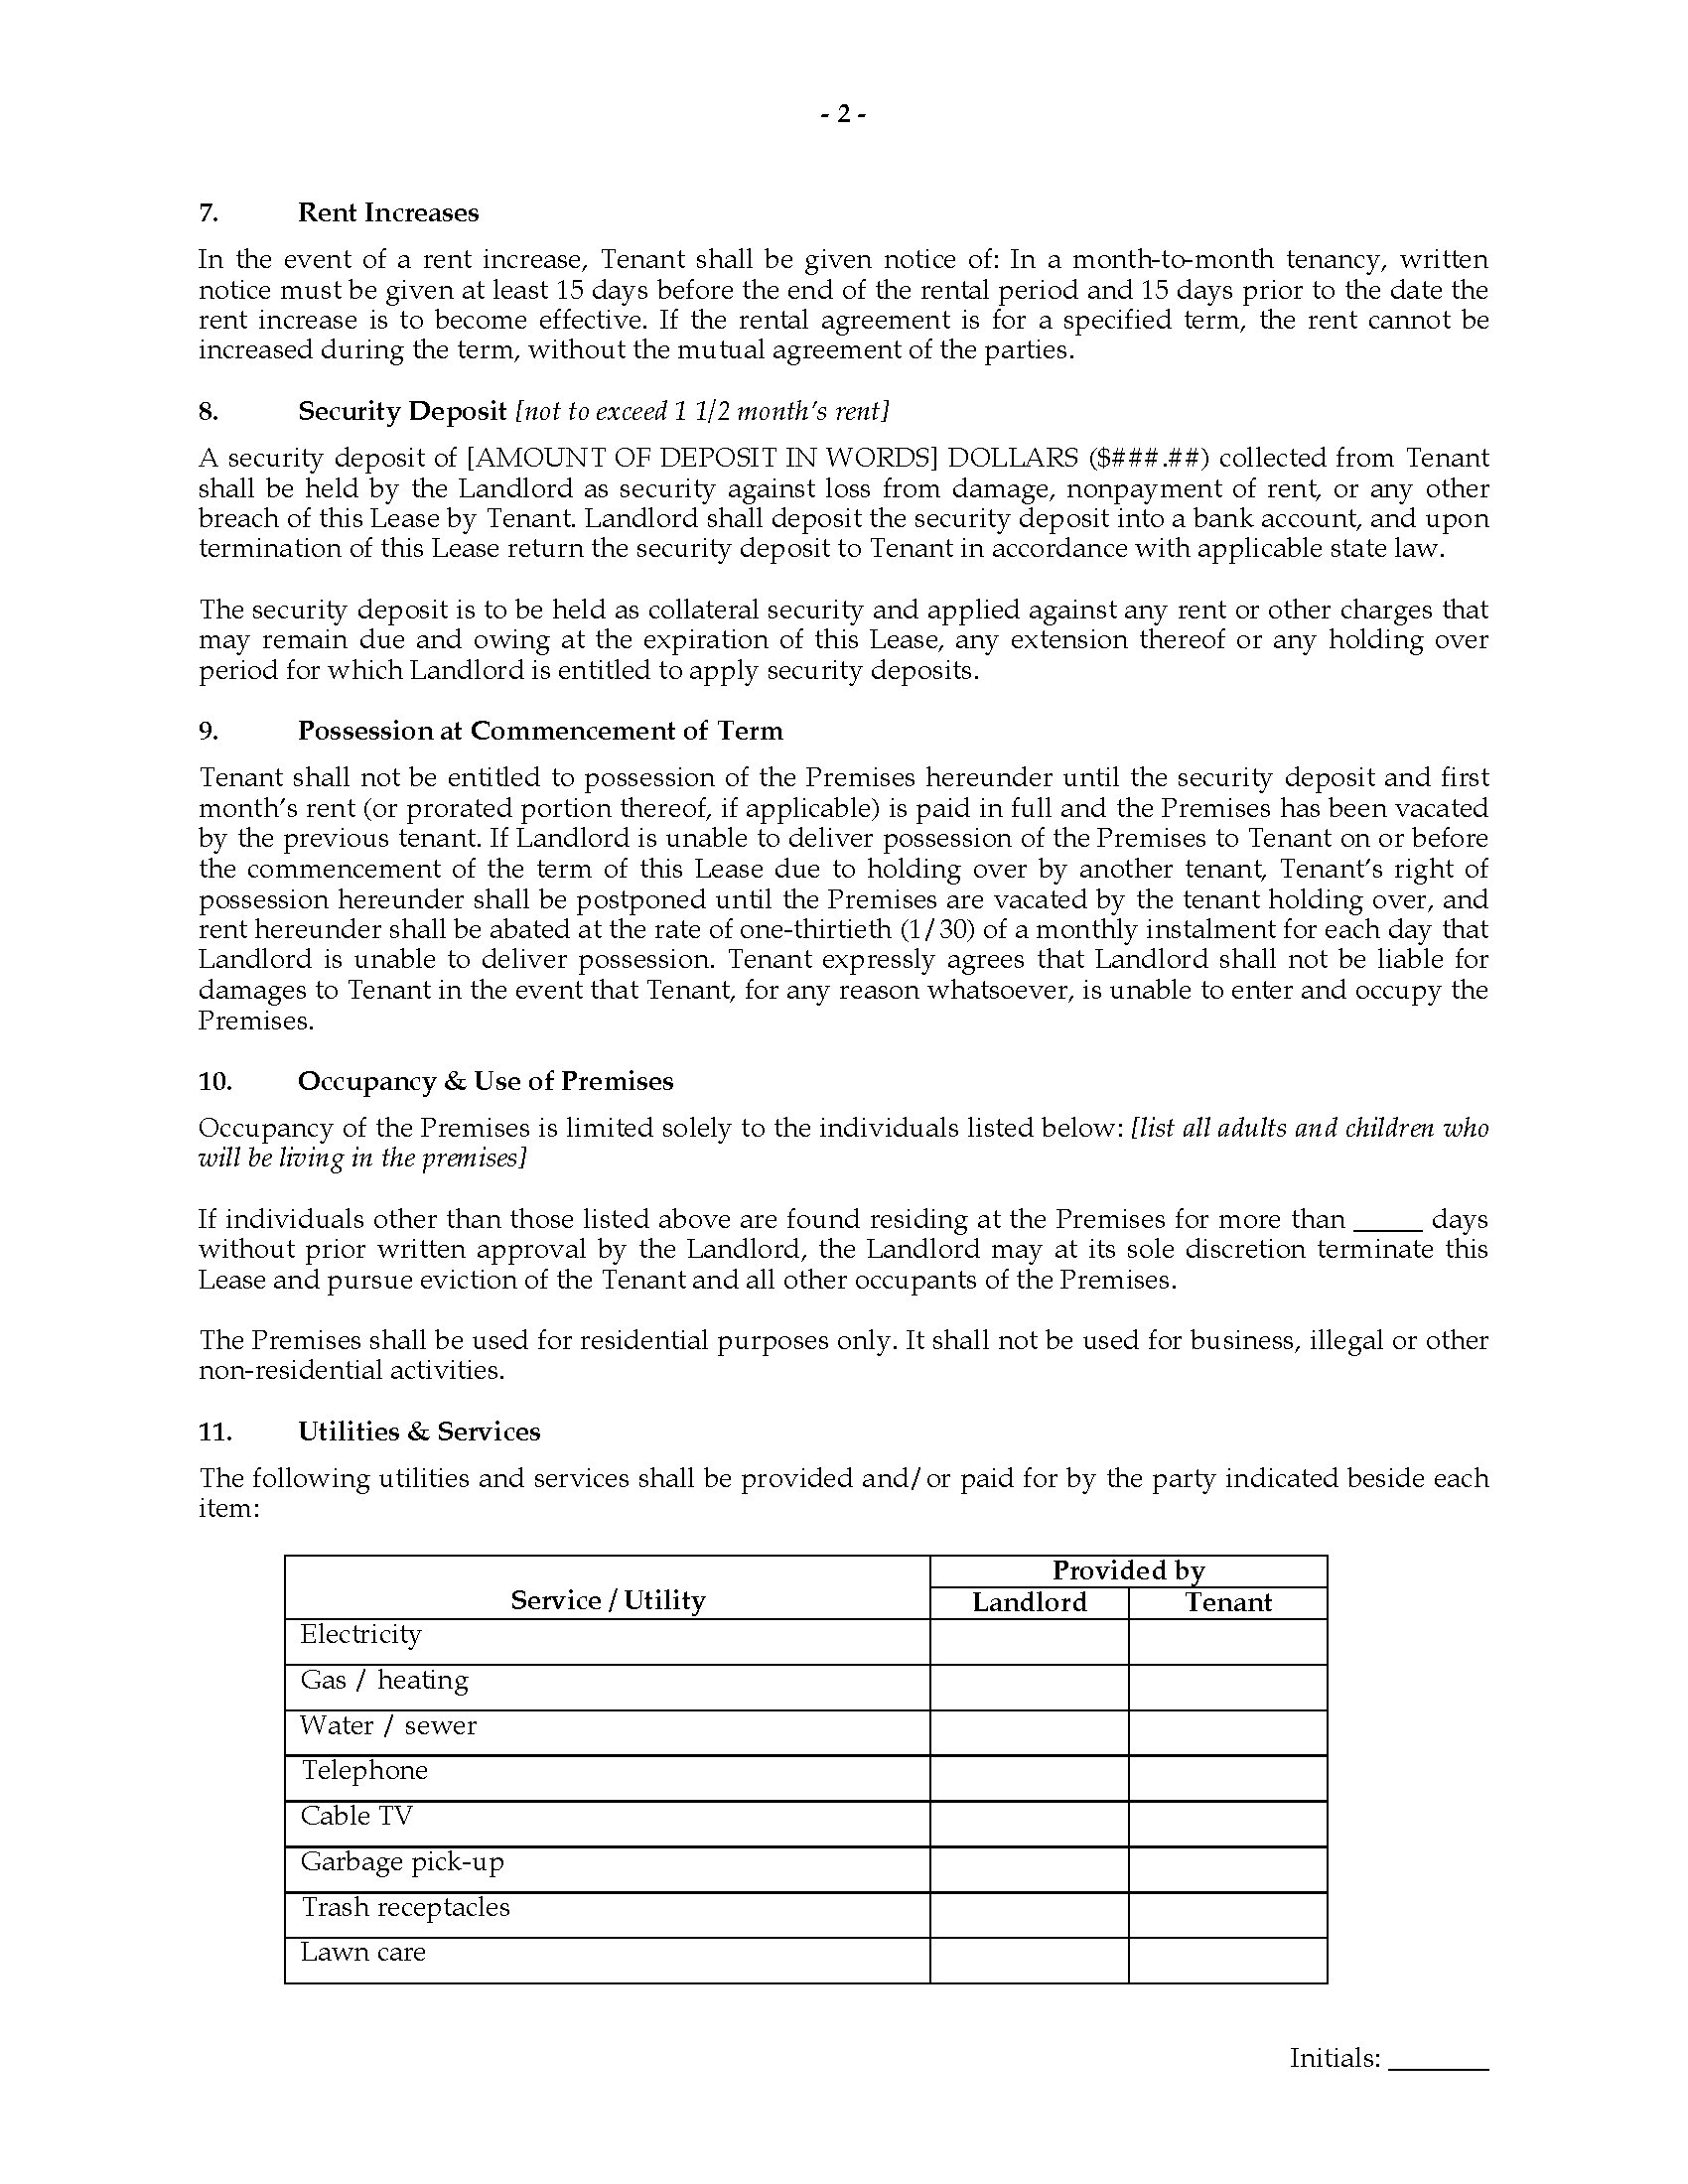 Idaho Fixed Term Residential Lease Agreement